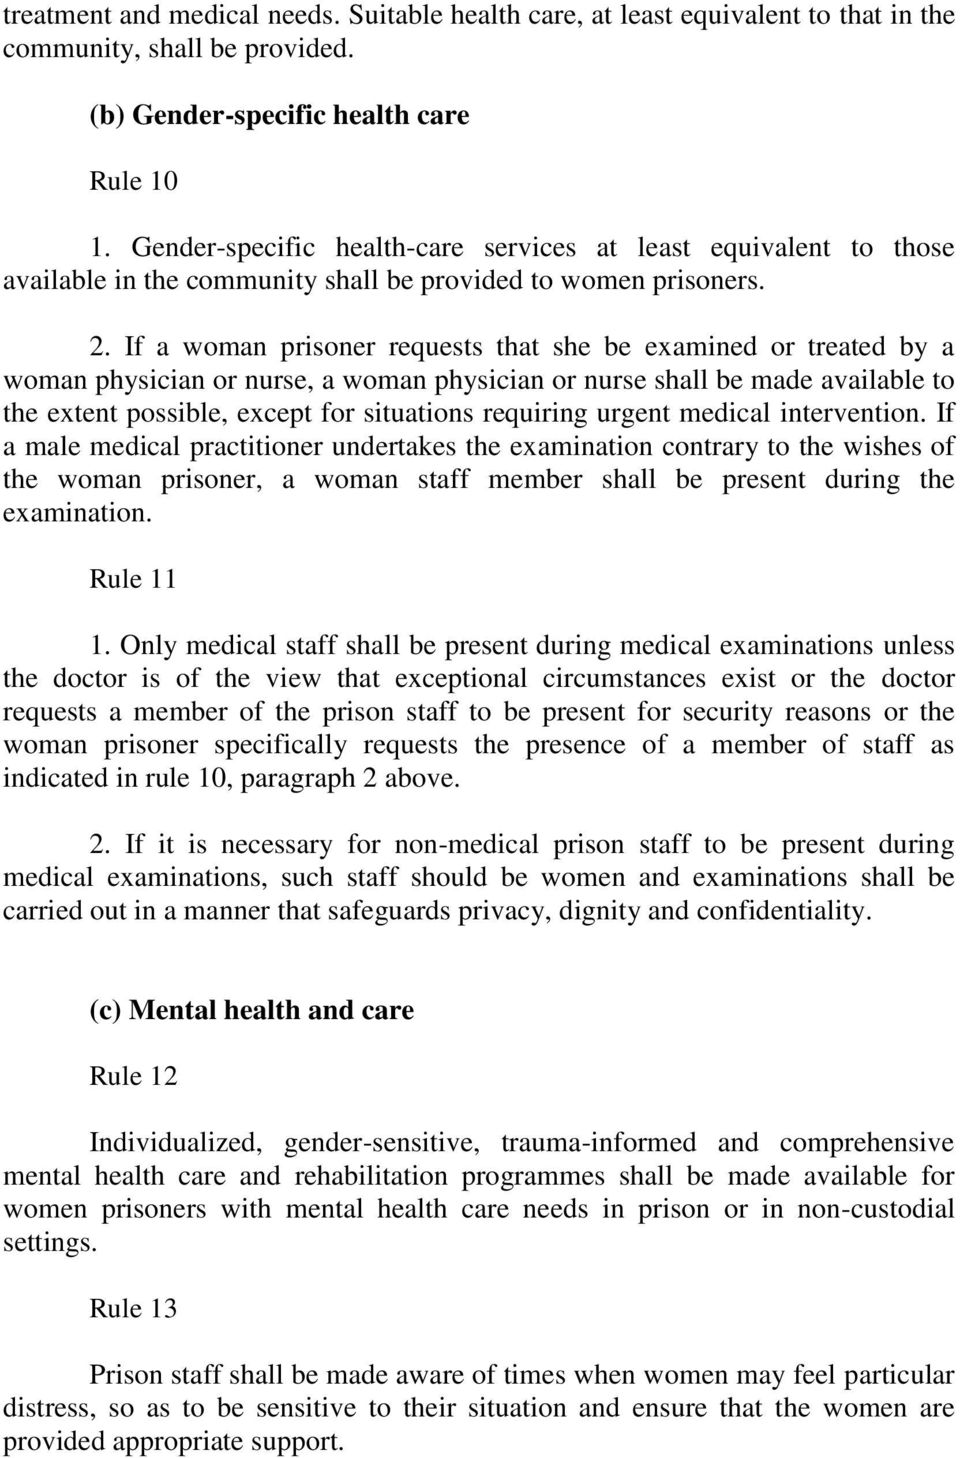 If a woman prisoner requests that she be examined or treated by a woman physician or nurse, a woman physician or nurse shall be made available to the extent possible, except for situations requiring